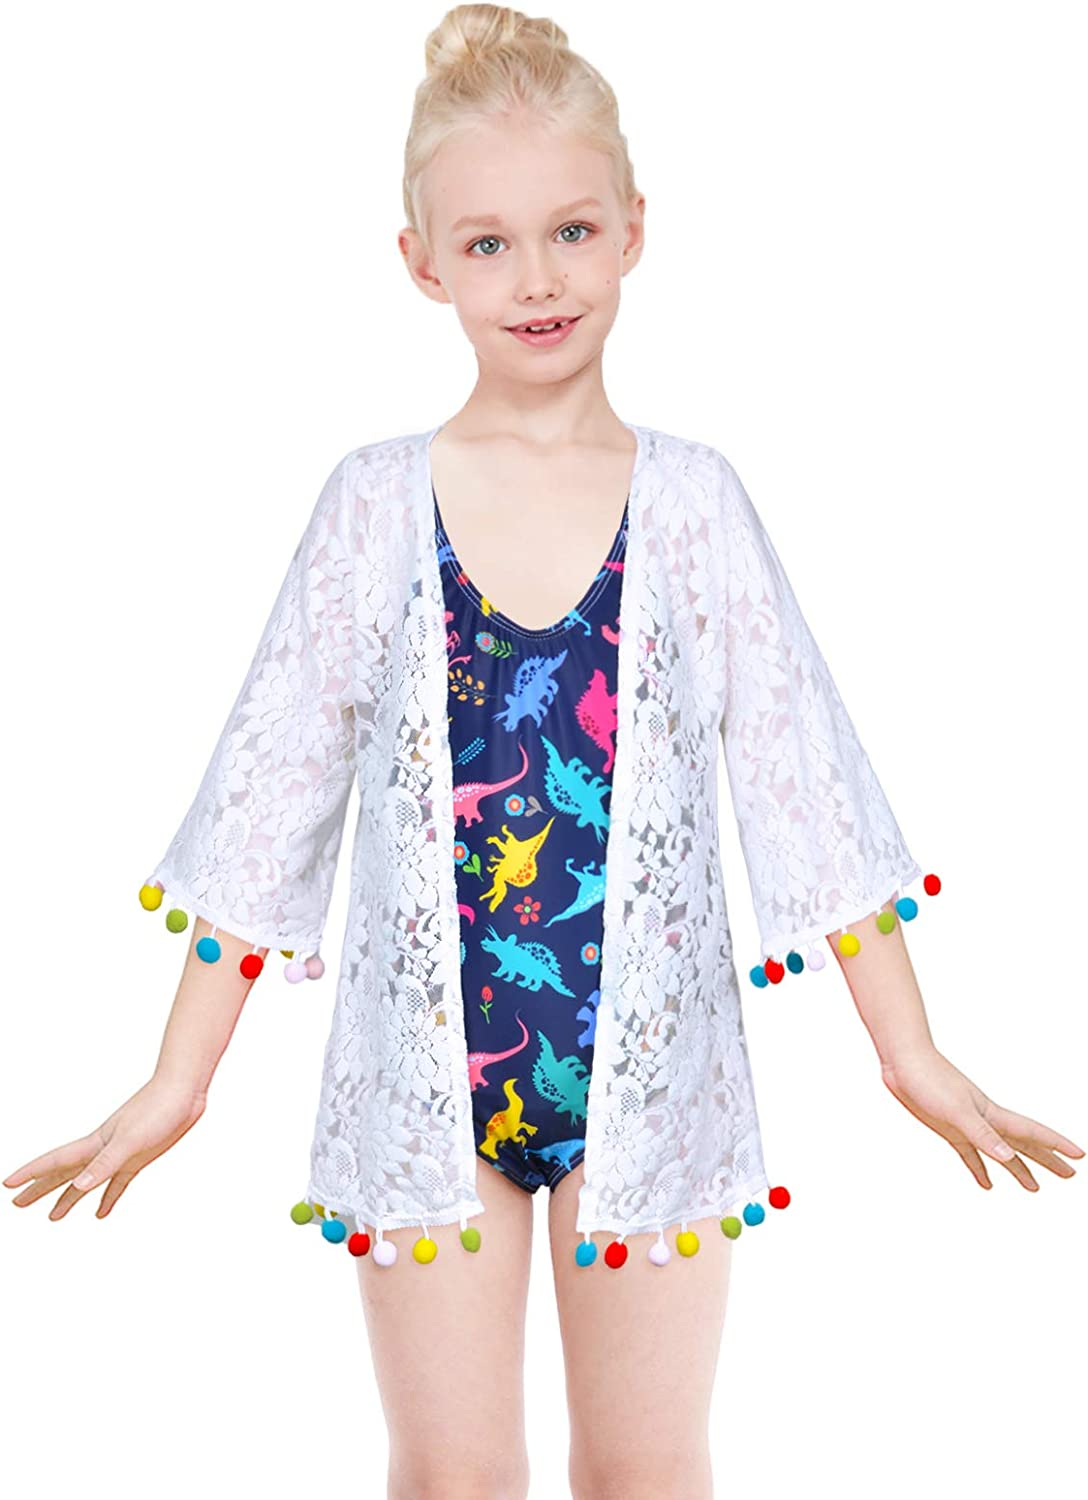 Kid Girls Chiffon Unicorn Mermaid Cover-up Beach Swimsuit Coverup Pompom Tassel